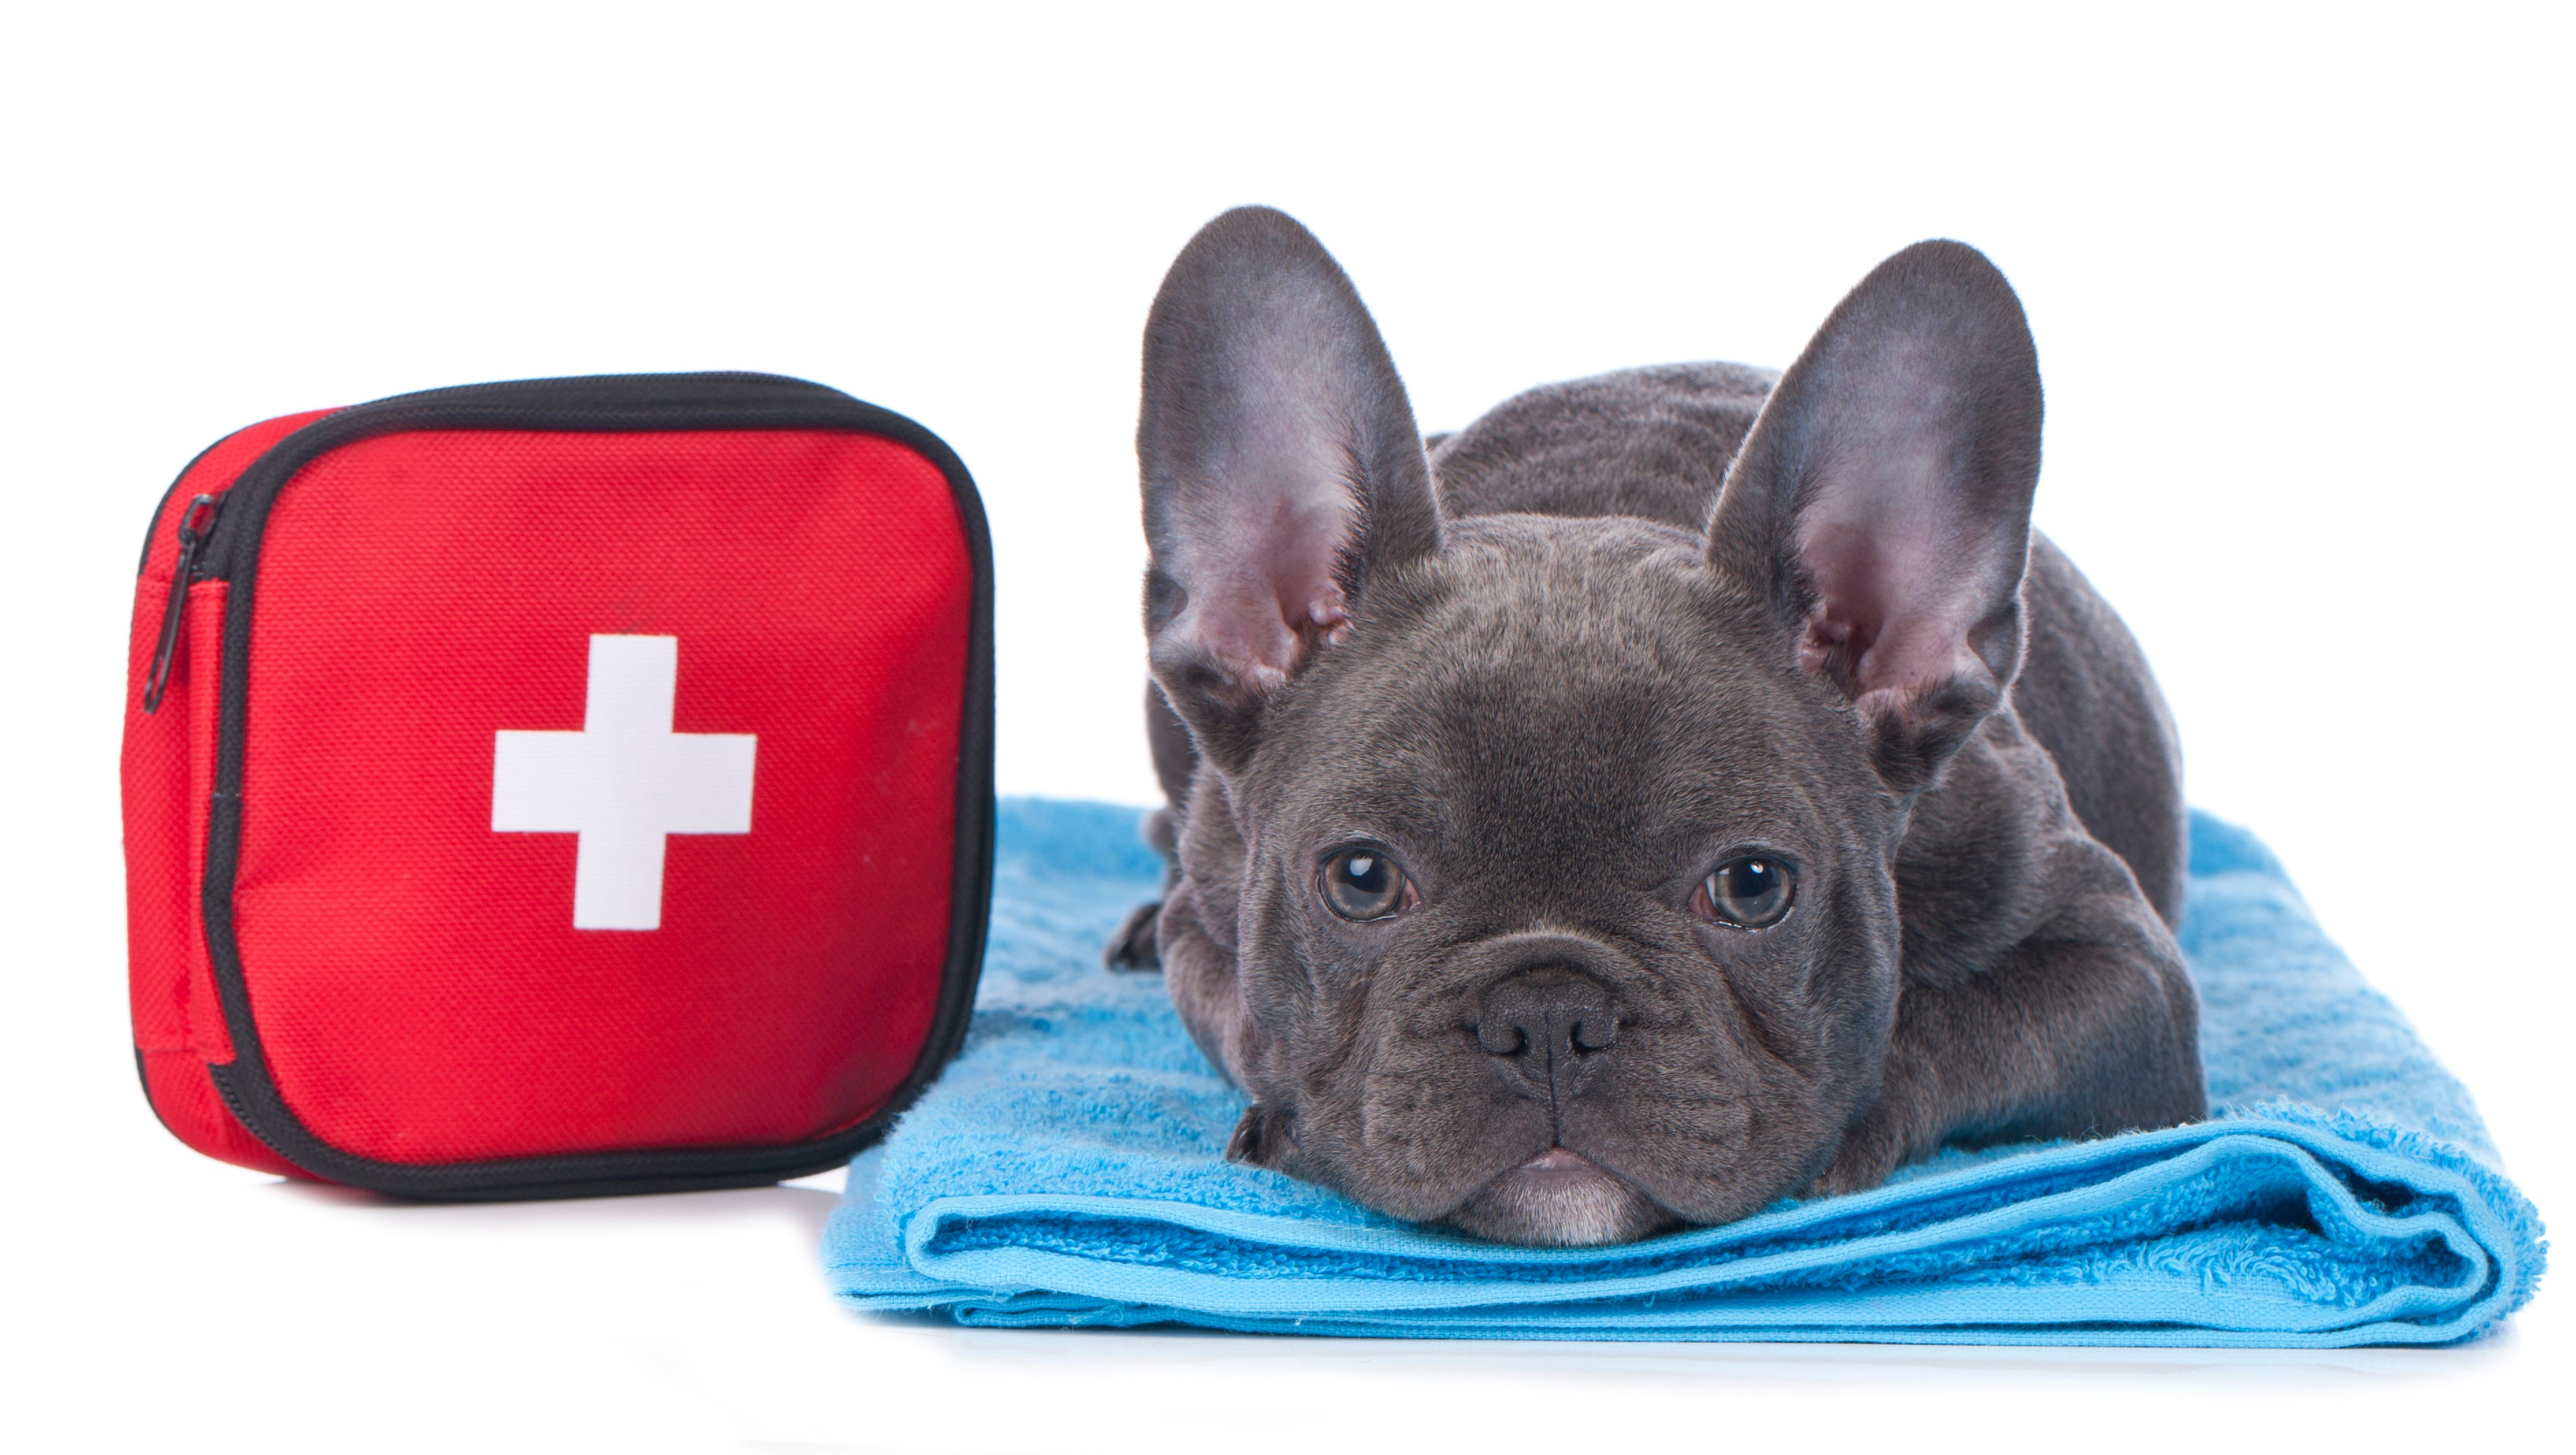 Week 18: Furry friends need first aid too